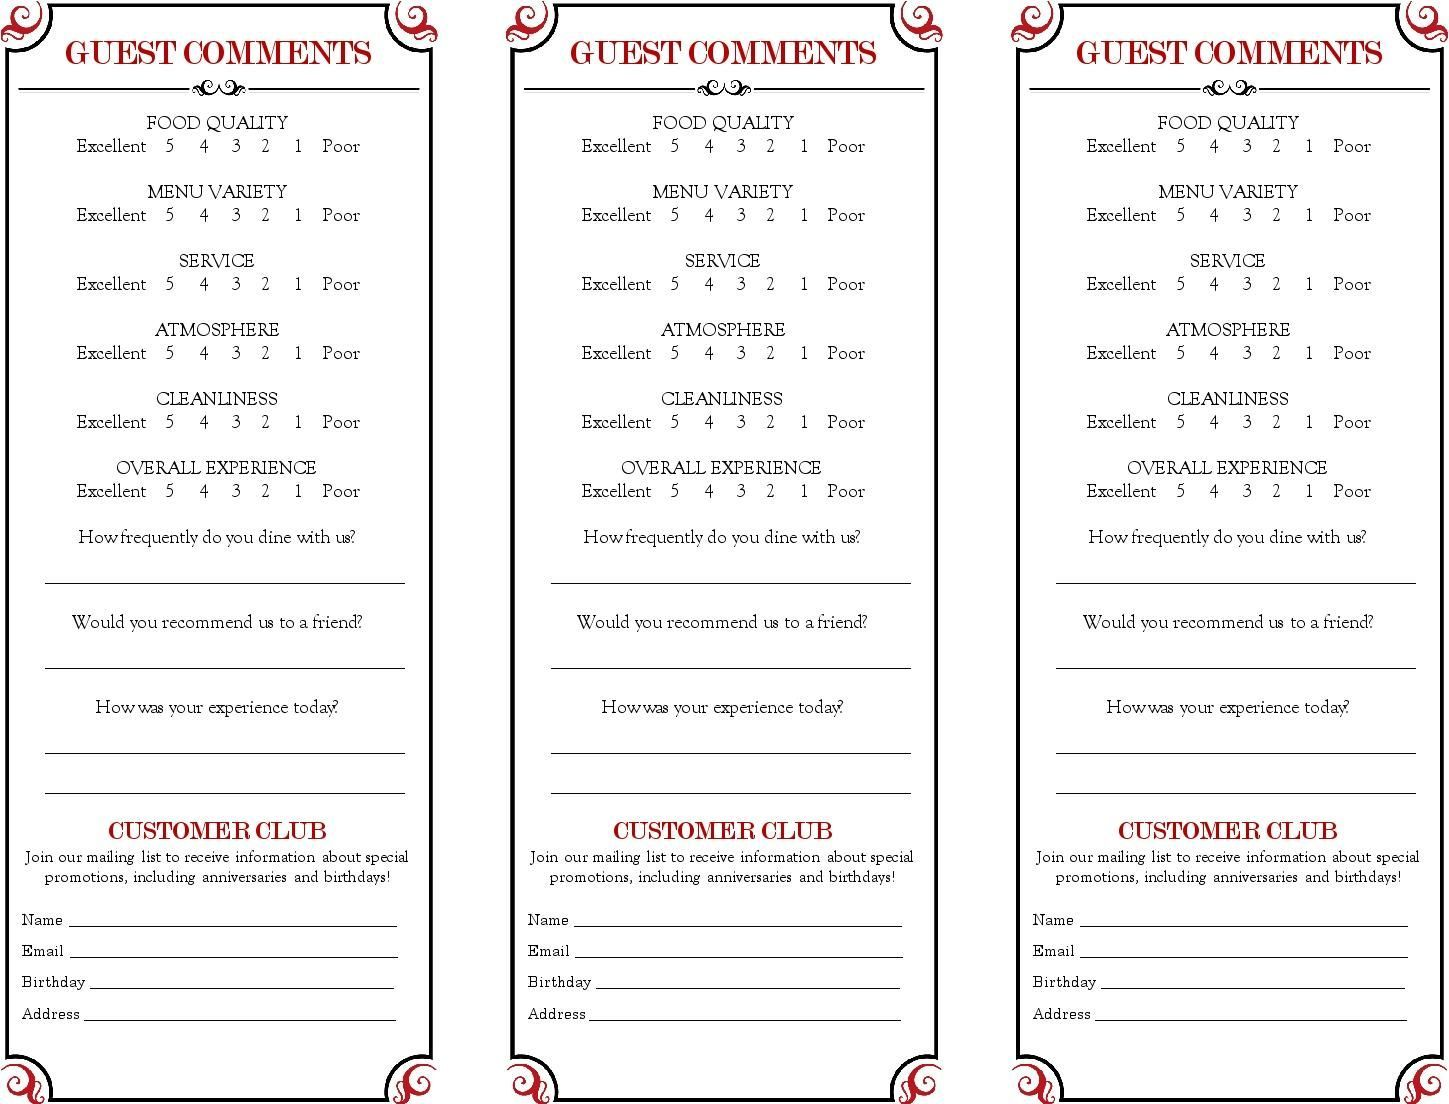 Restaurant Comment Card Google Search Comment Cards In Pertaining To Restaurant Comment Card Template C Card Templates Free Card Template Restaurant Card